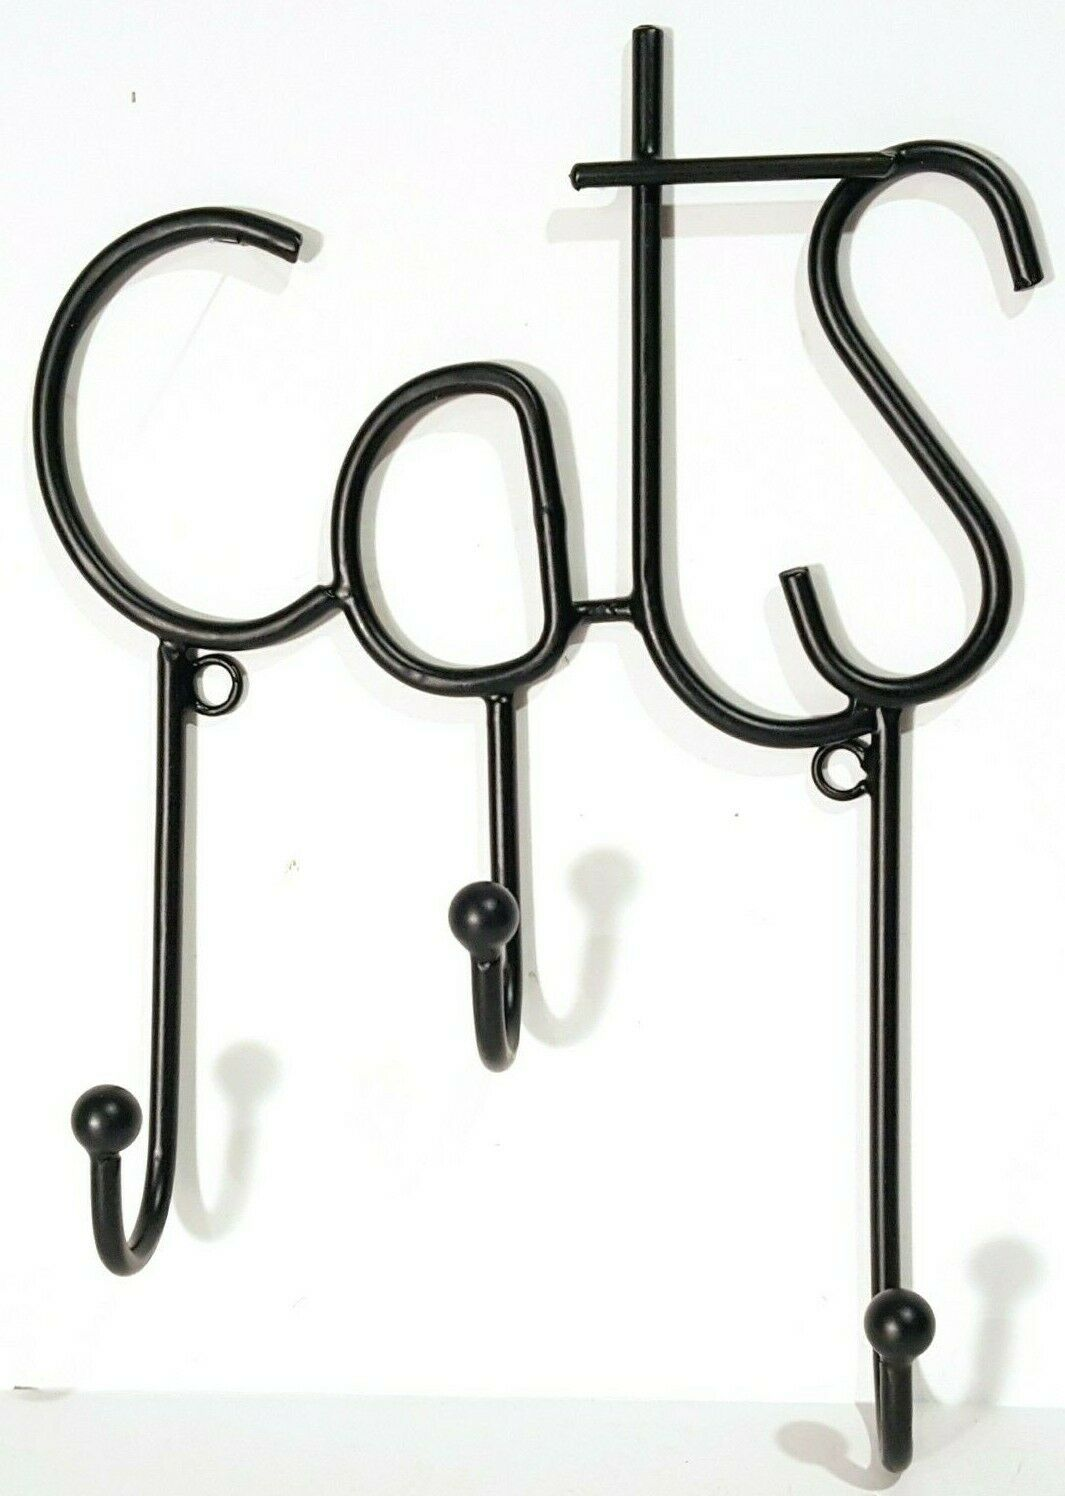 https://www.ebay.com/str/bizylizy2/Cast-Iron-and-Metal-Decor/_i.html?_storecat=66931617013